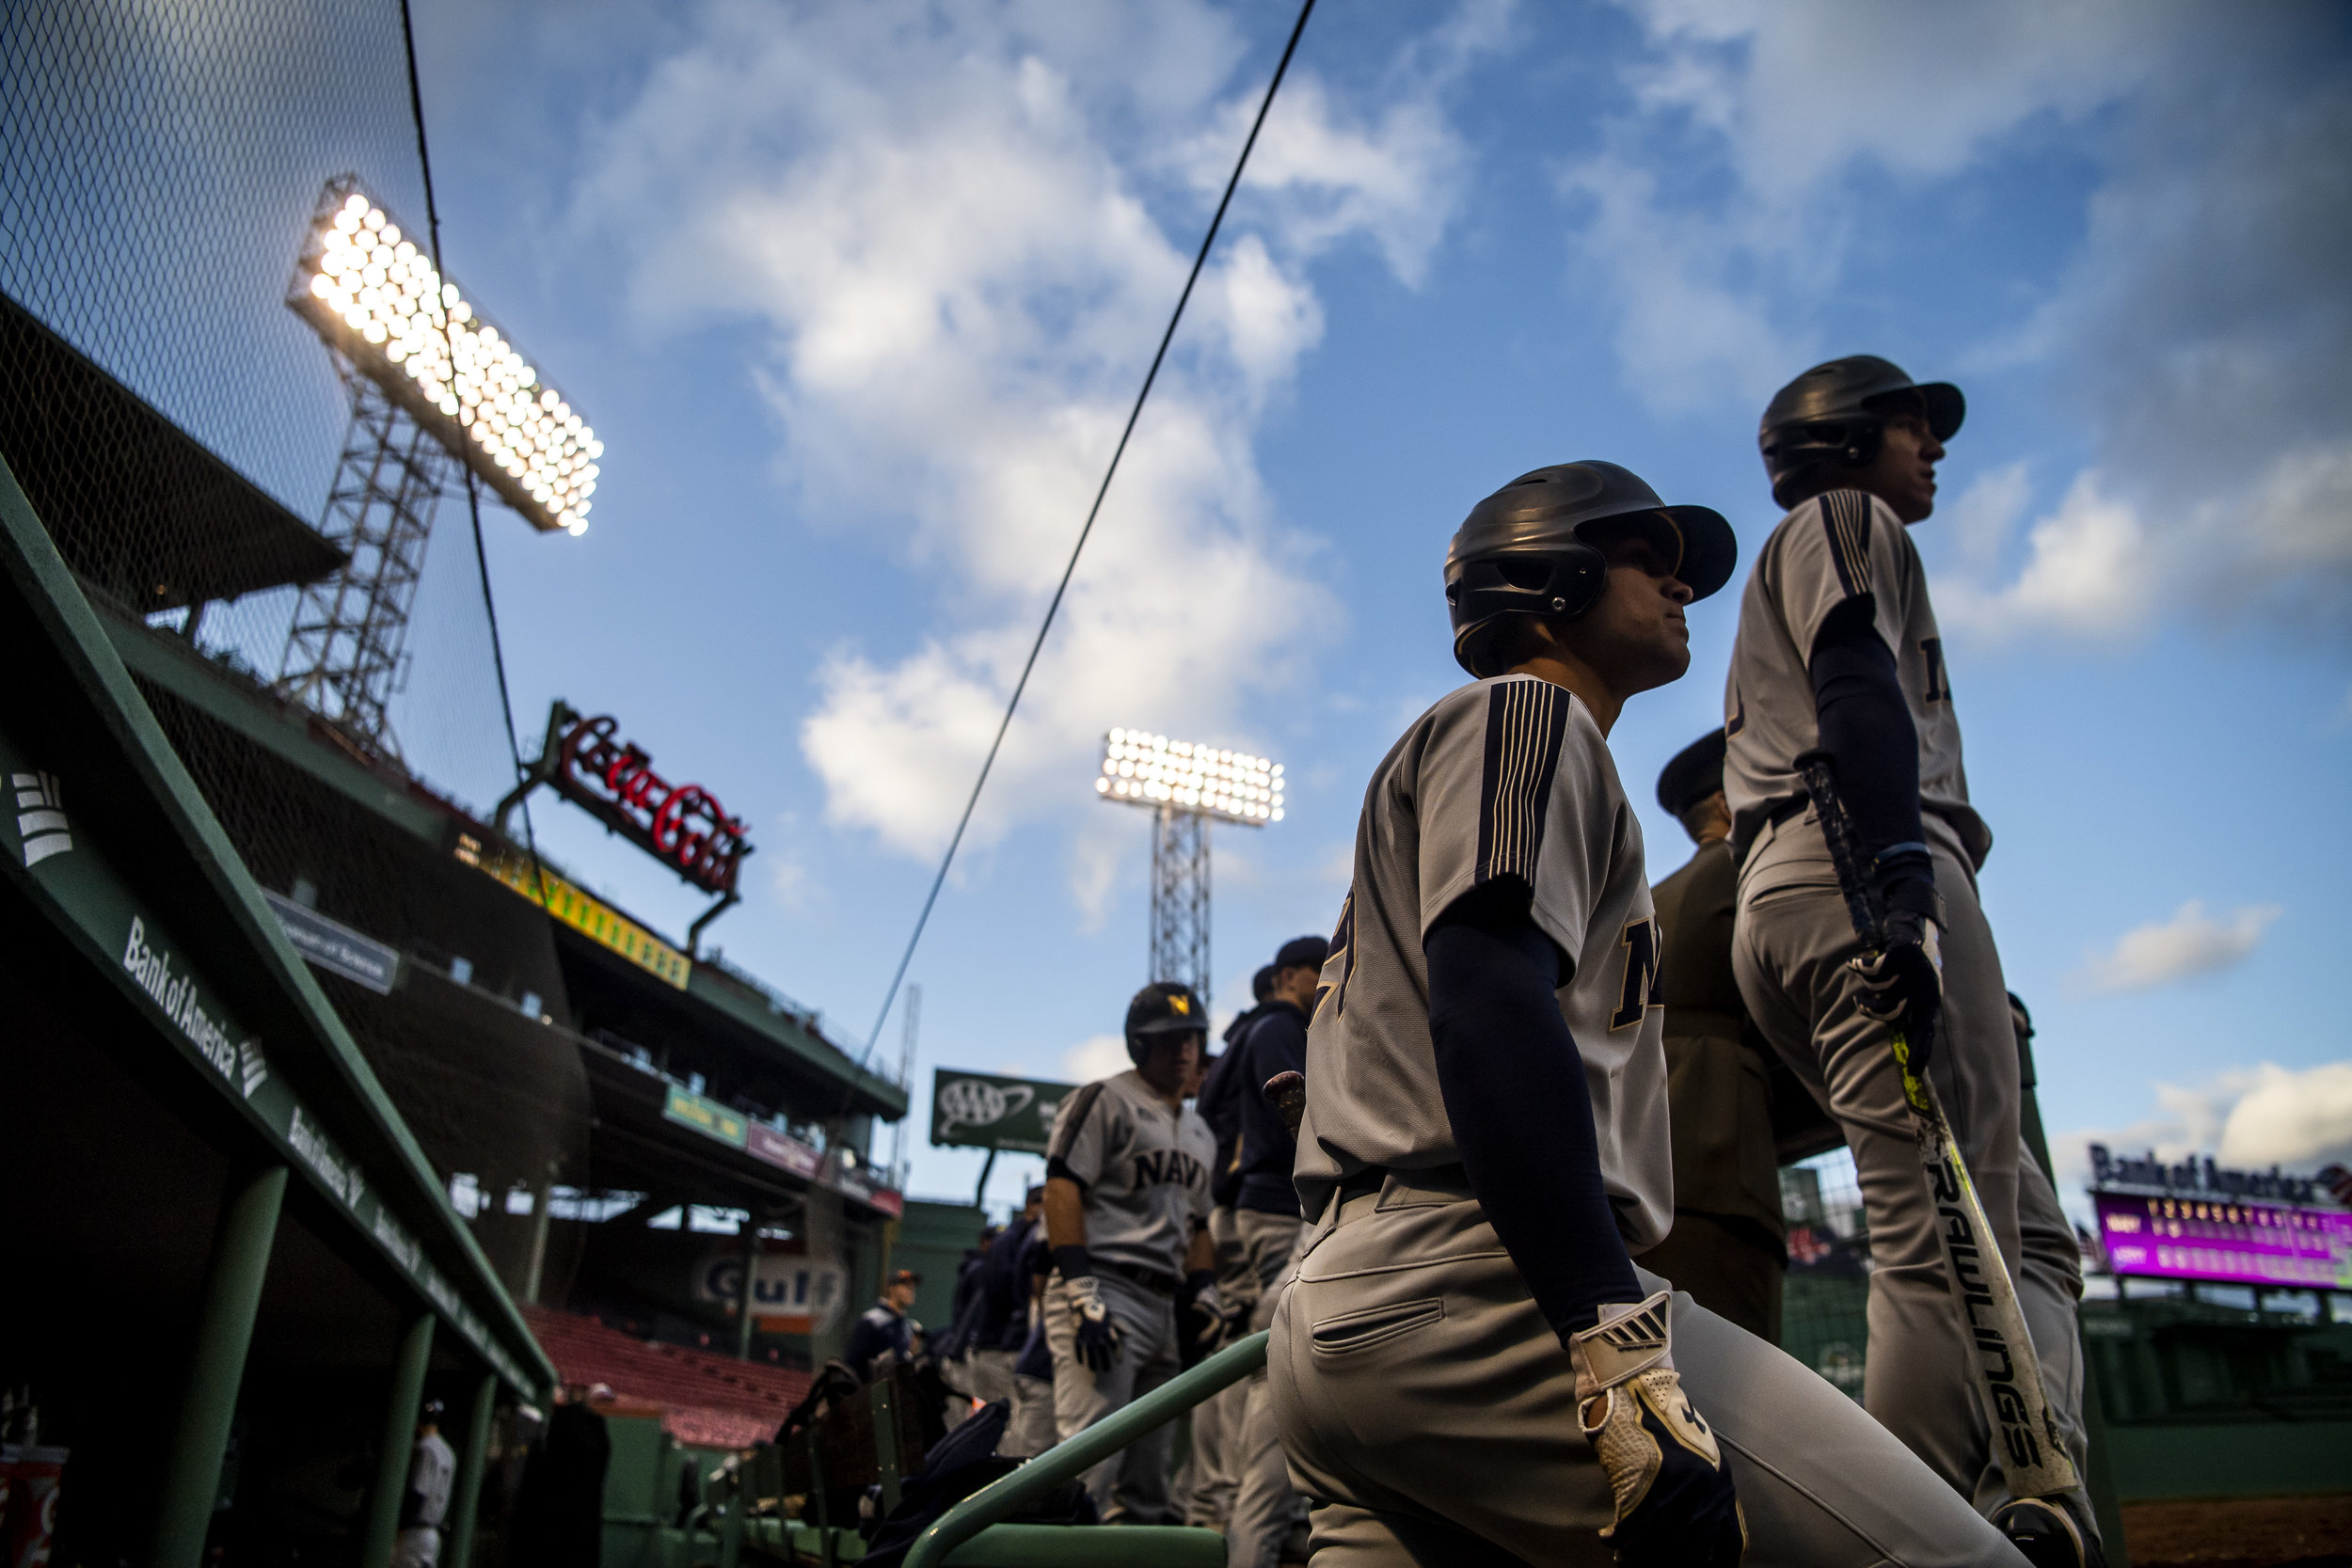 April 20, 2018, Boston, MA: The Navy team stands in the dugout waiting to bat as Army - West Point faces The Naval Academy at Fenway Park in Boston, Massachusetts Friday, April 20, 2018. (Photo by Matthew Thomas/Boston Red Sox)